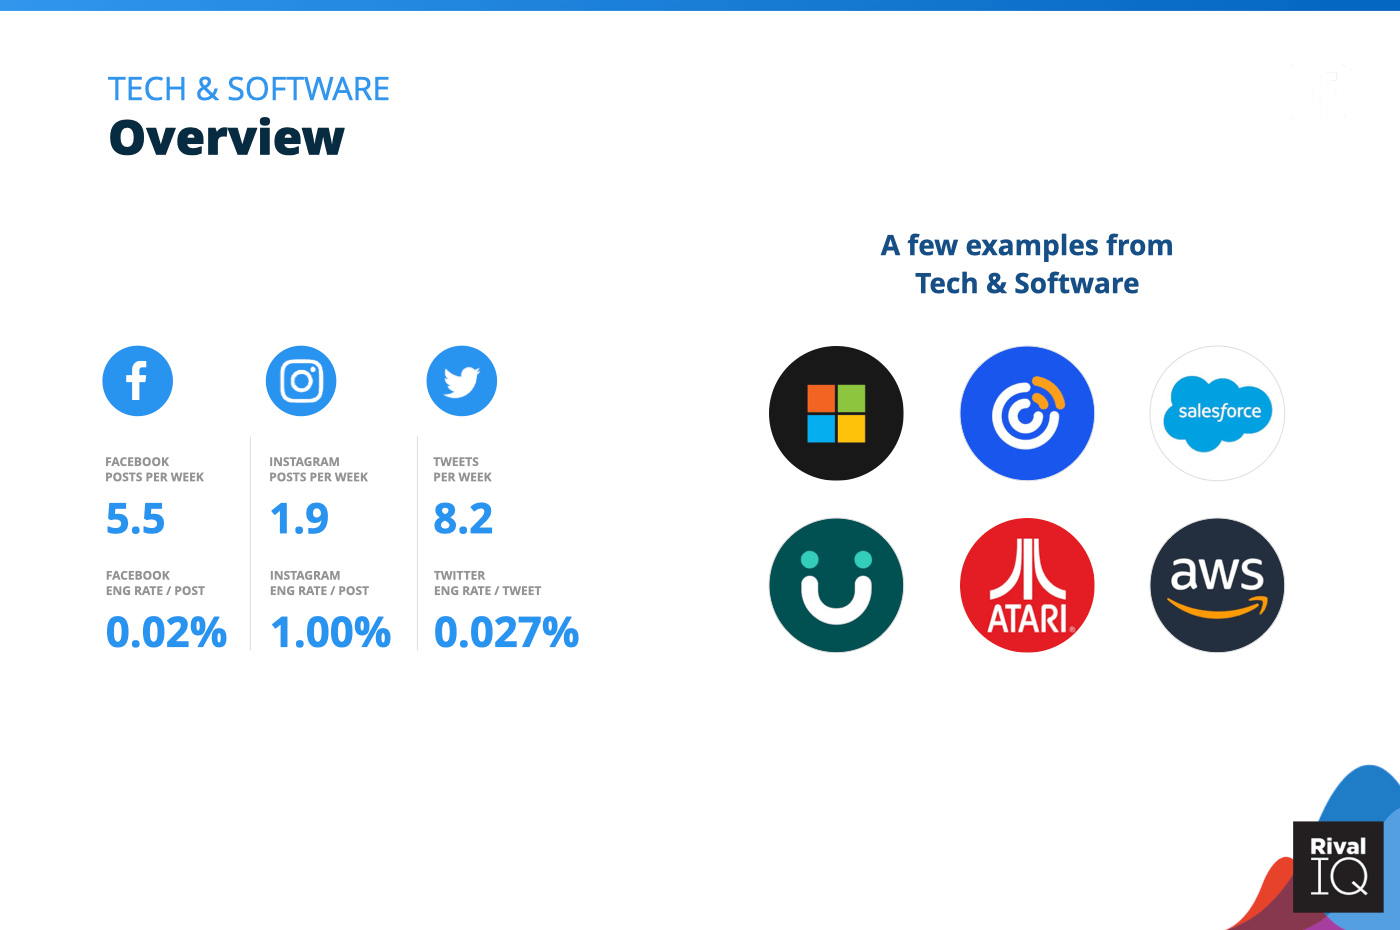 Overview of all benchmarks, Tech & Software